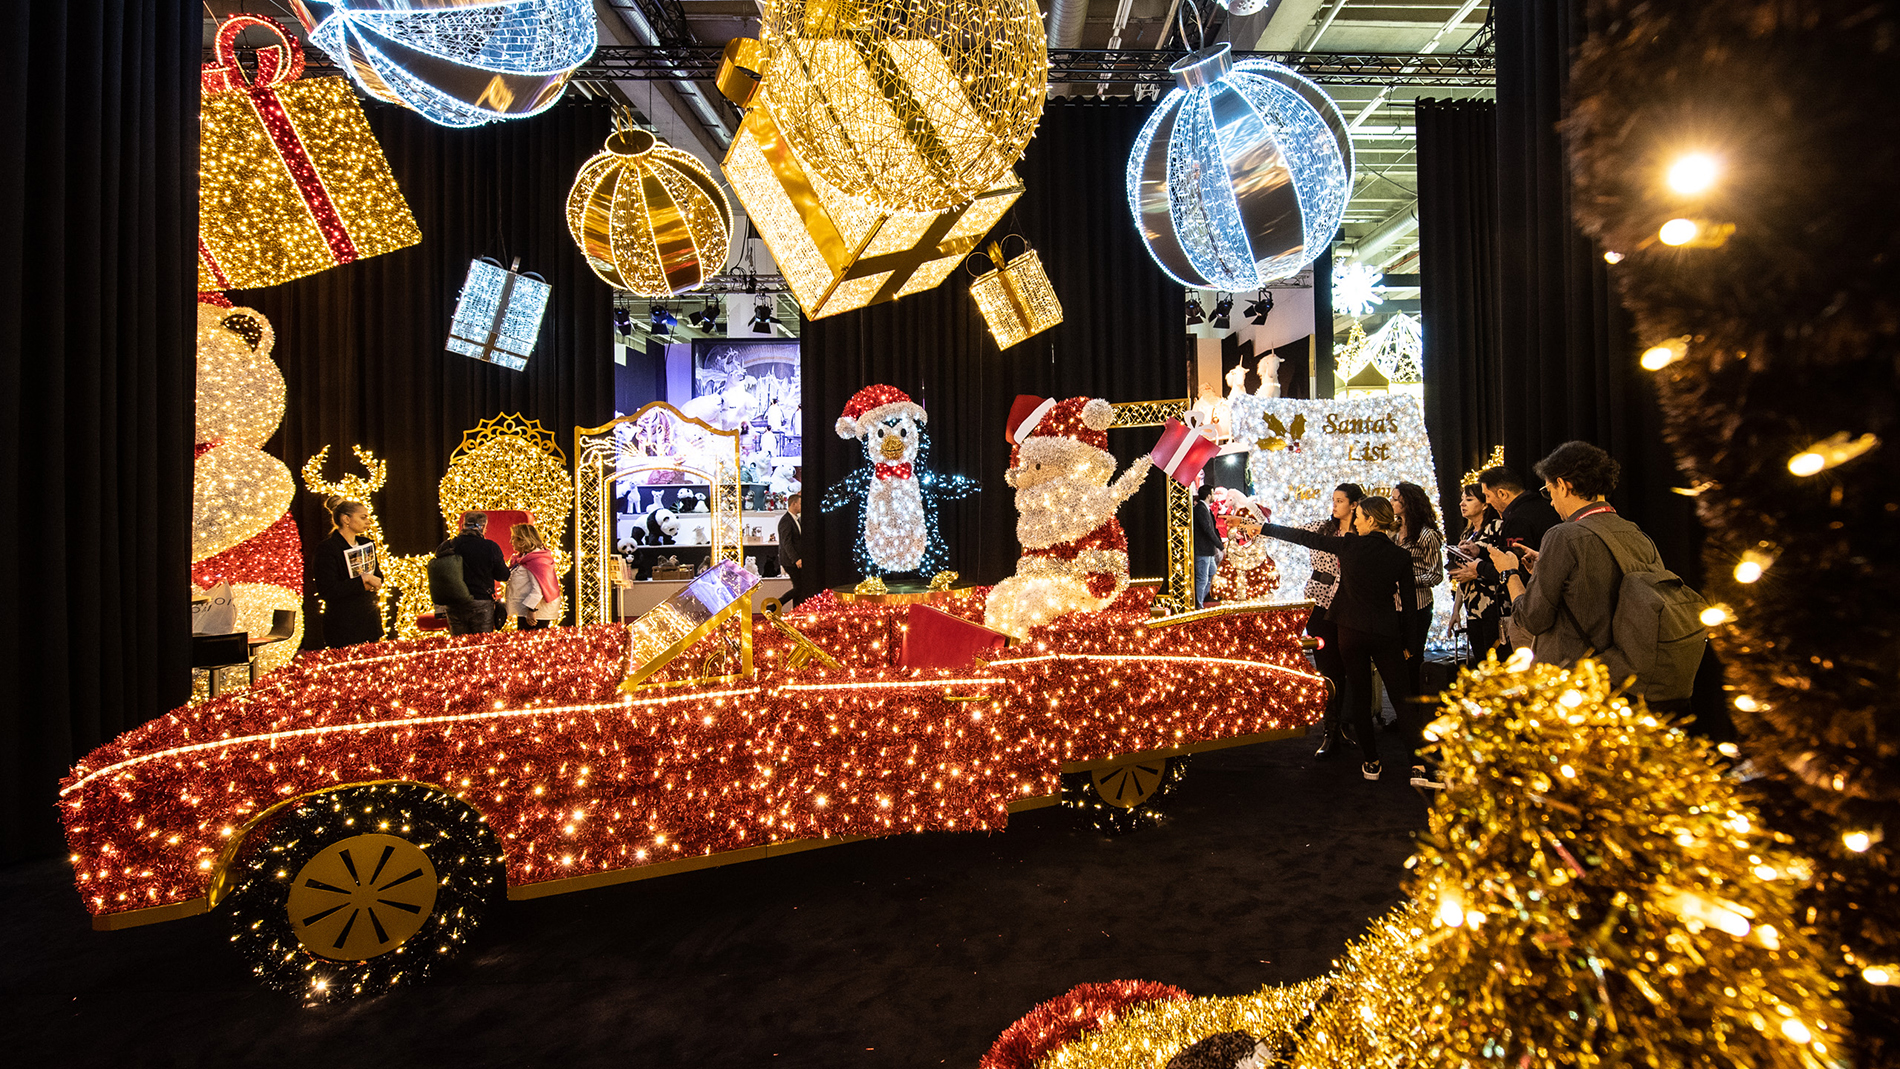 Visual merchandising & Christmas lights for large area decoration at Christmasworld